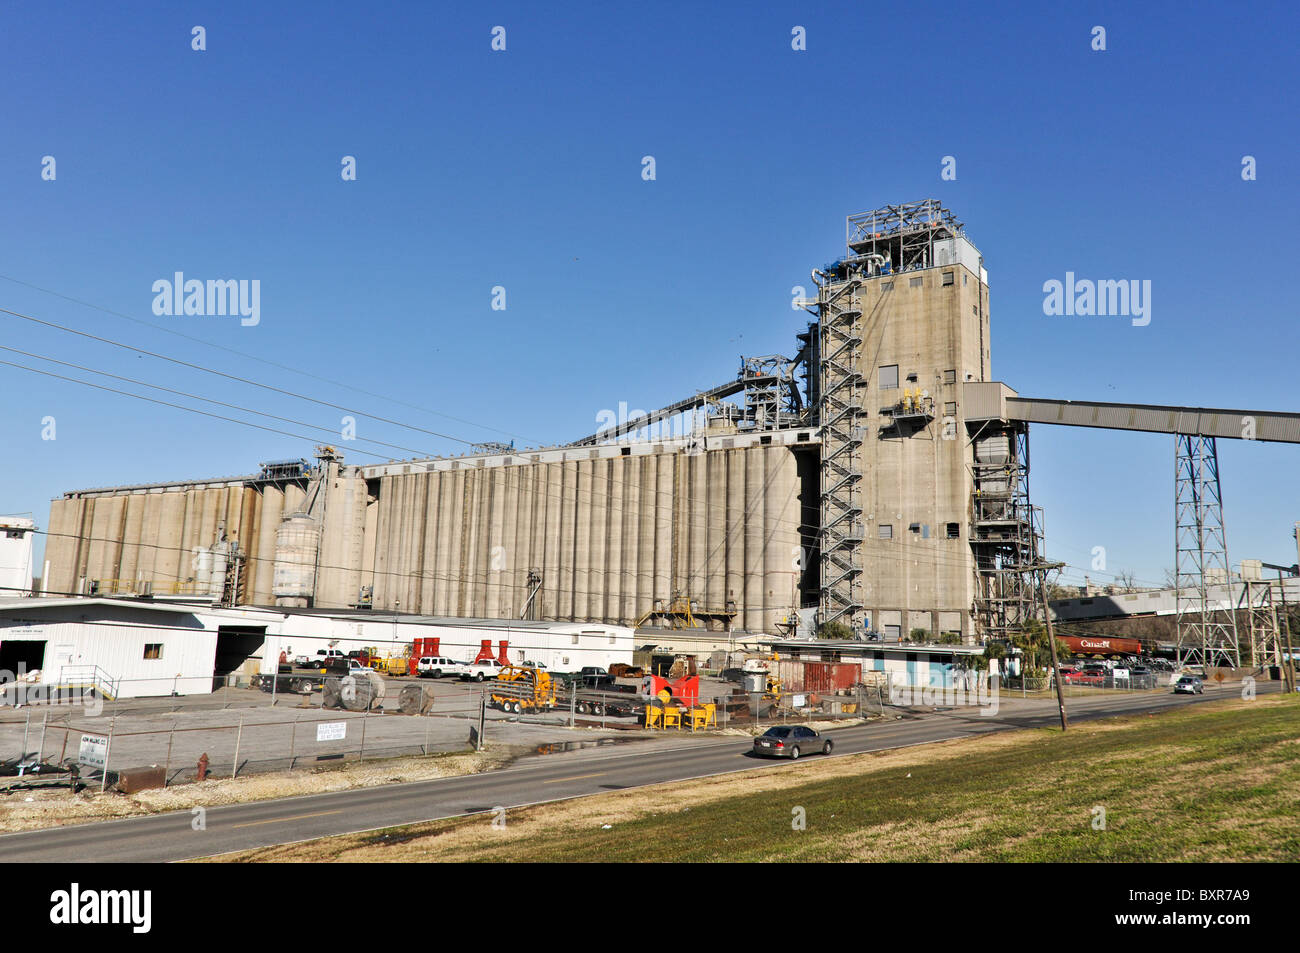 Grain elevator on Mississippi River, New Orleans, Louisiana - Stock Image